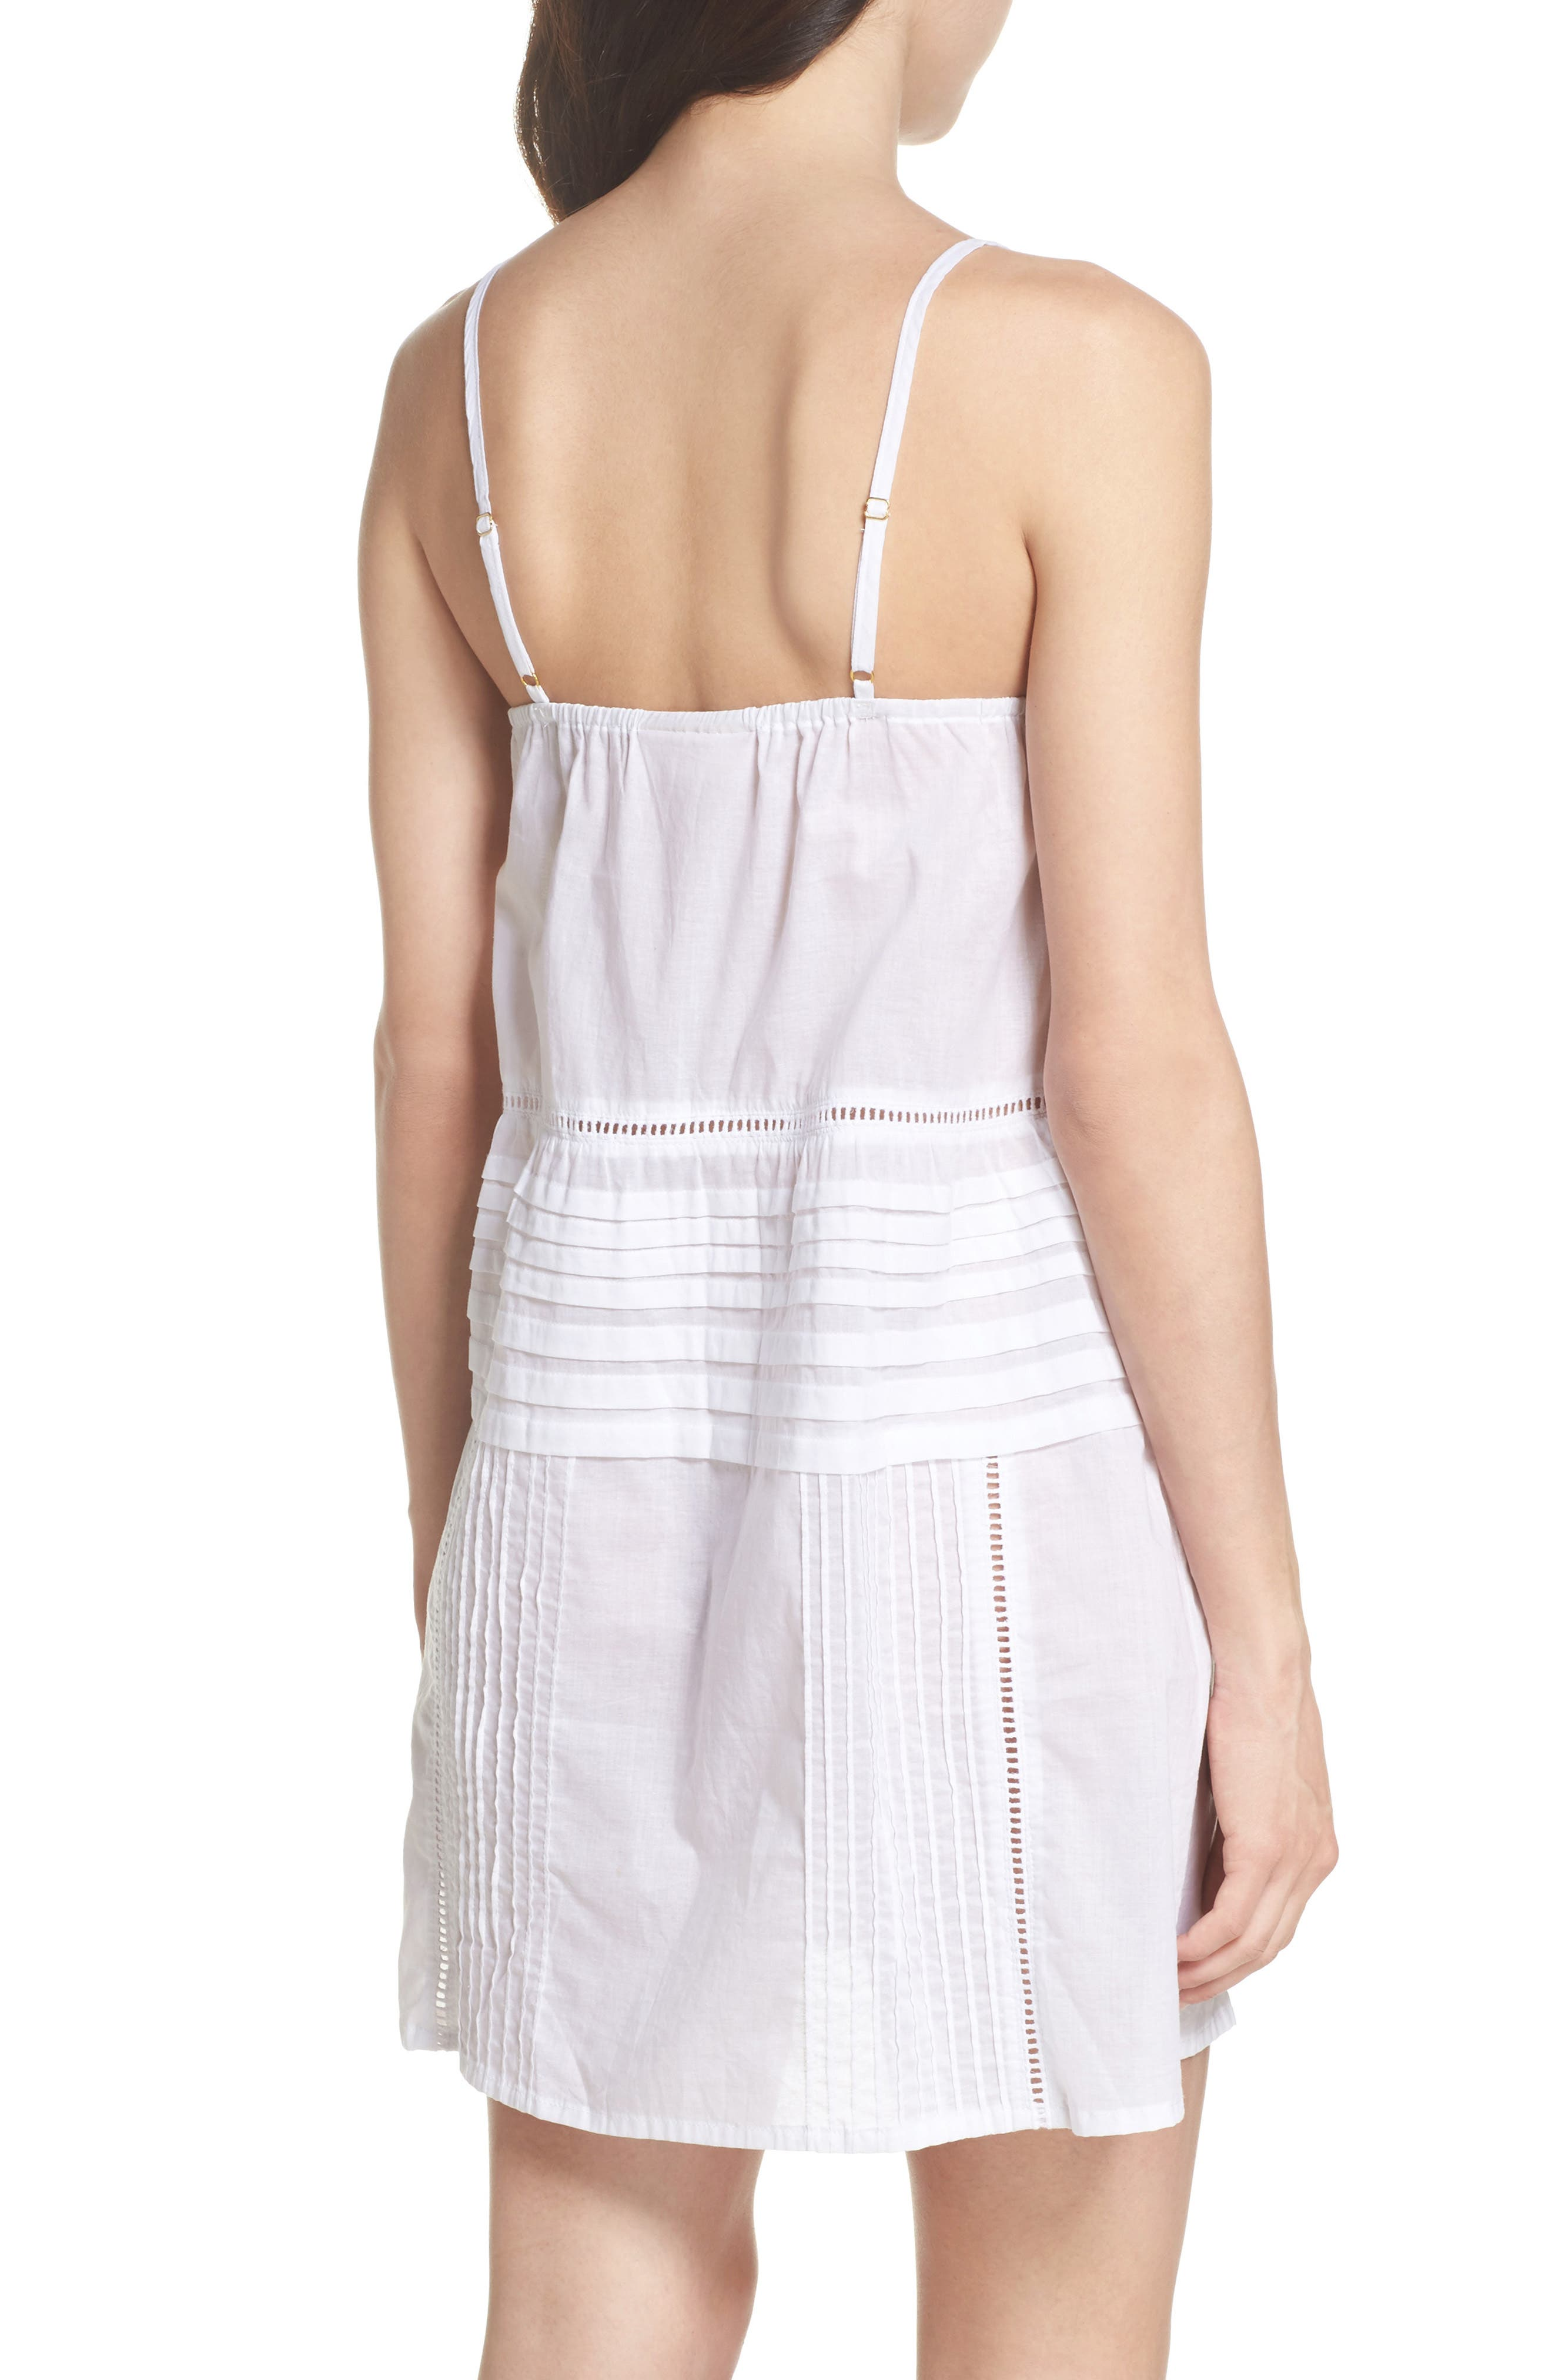 Embroidered Lace Chemise,                             Alternate thumbnail 2, color,                             White